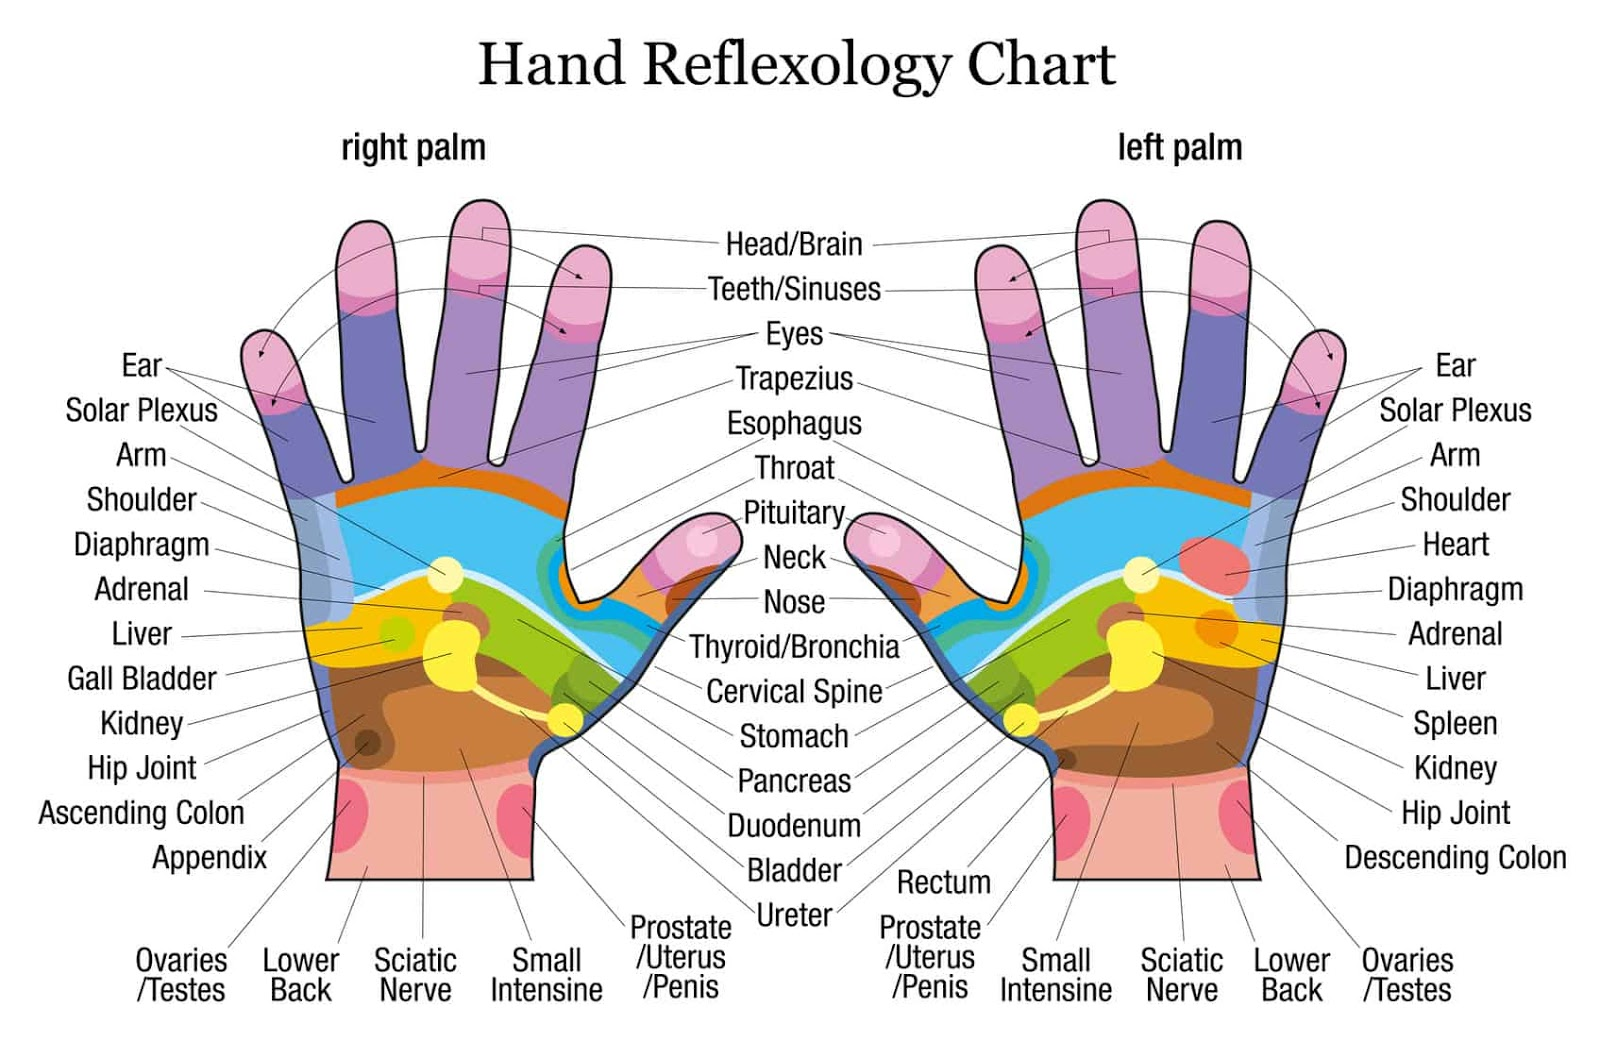 Acupressure: Tap These Points Of Your Hand To Treat The Pain